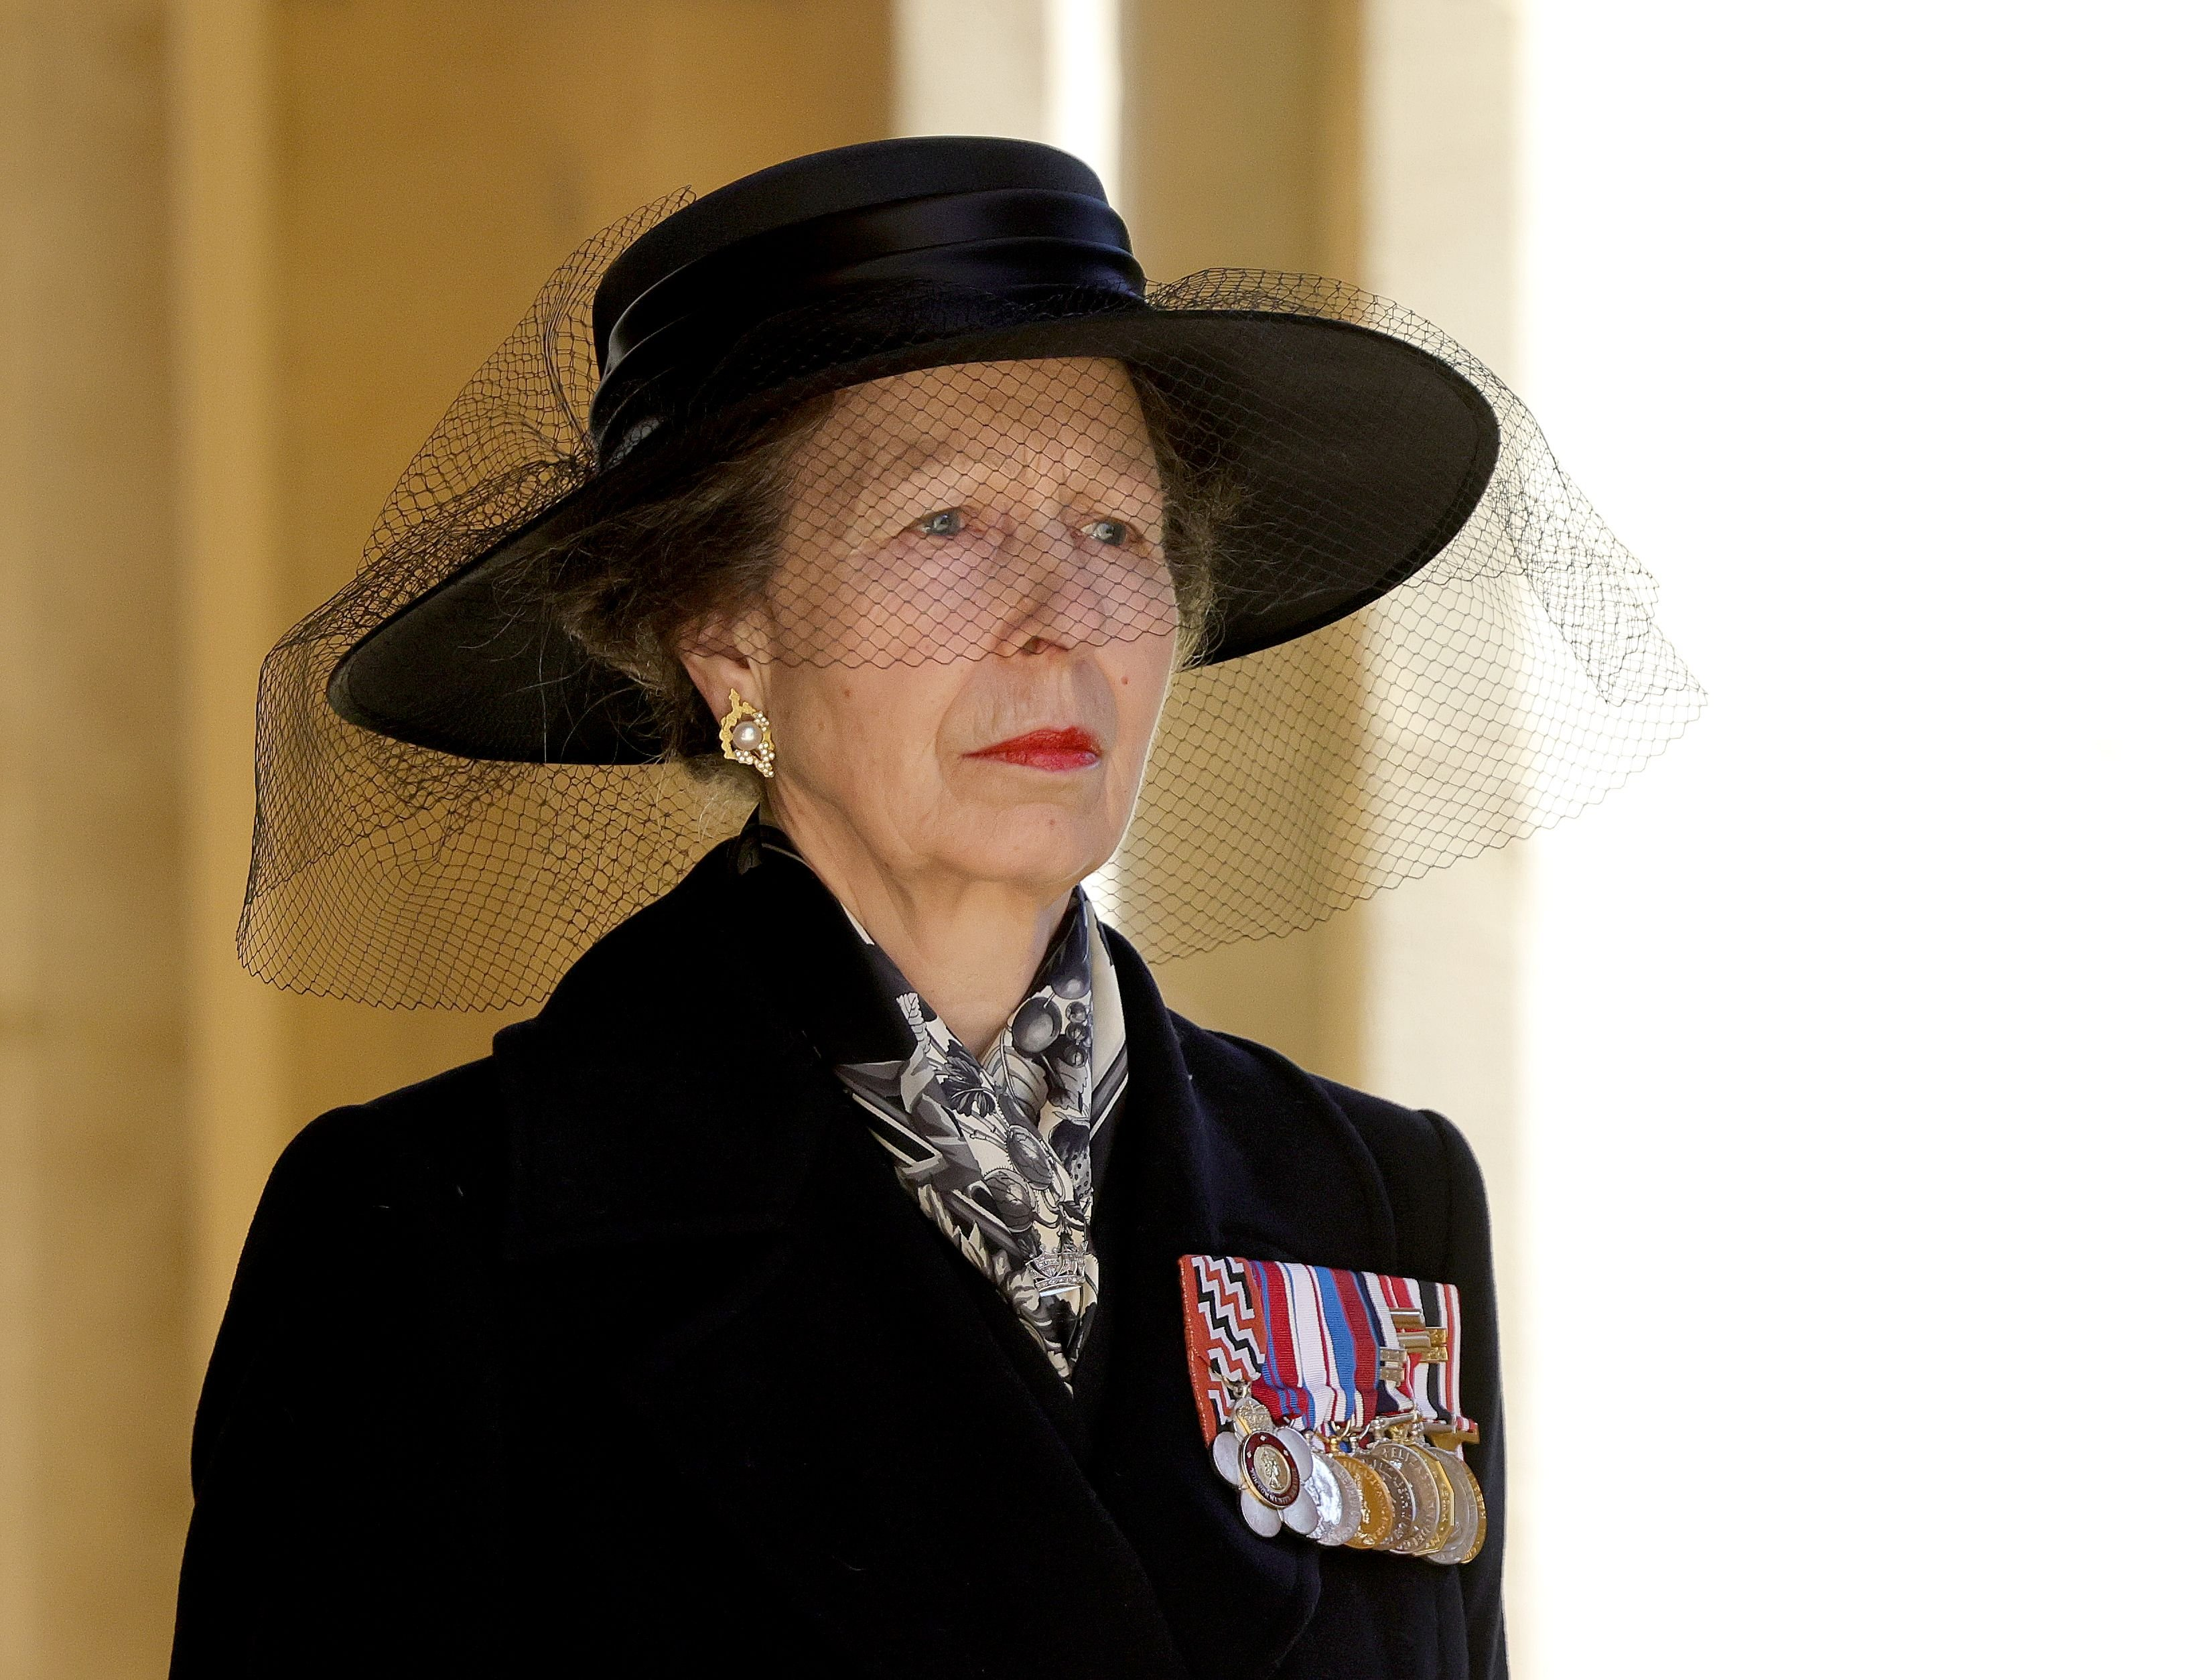 Princess Anne at the Ceremonial Procession during the funeral of Prince Philip at Windsor Castle on April 17, 2021 | Photo: Getty Images